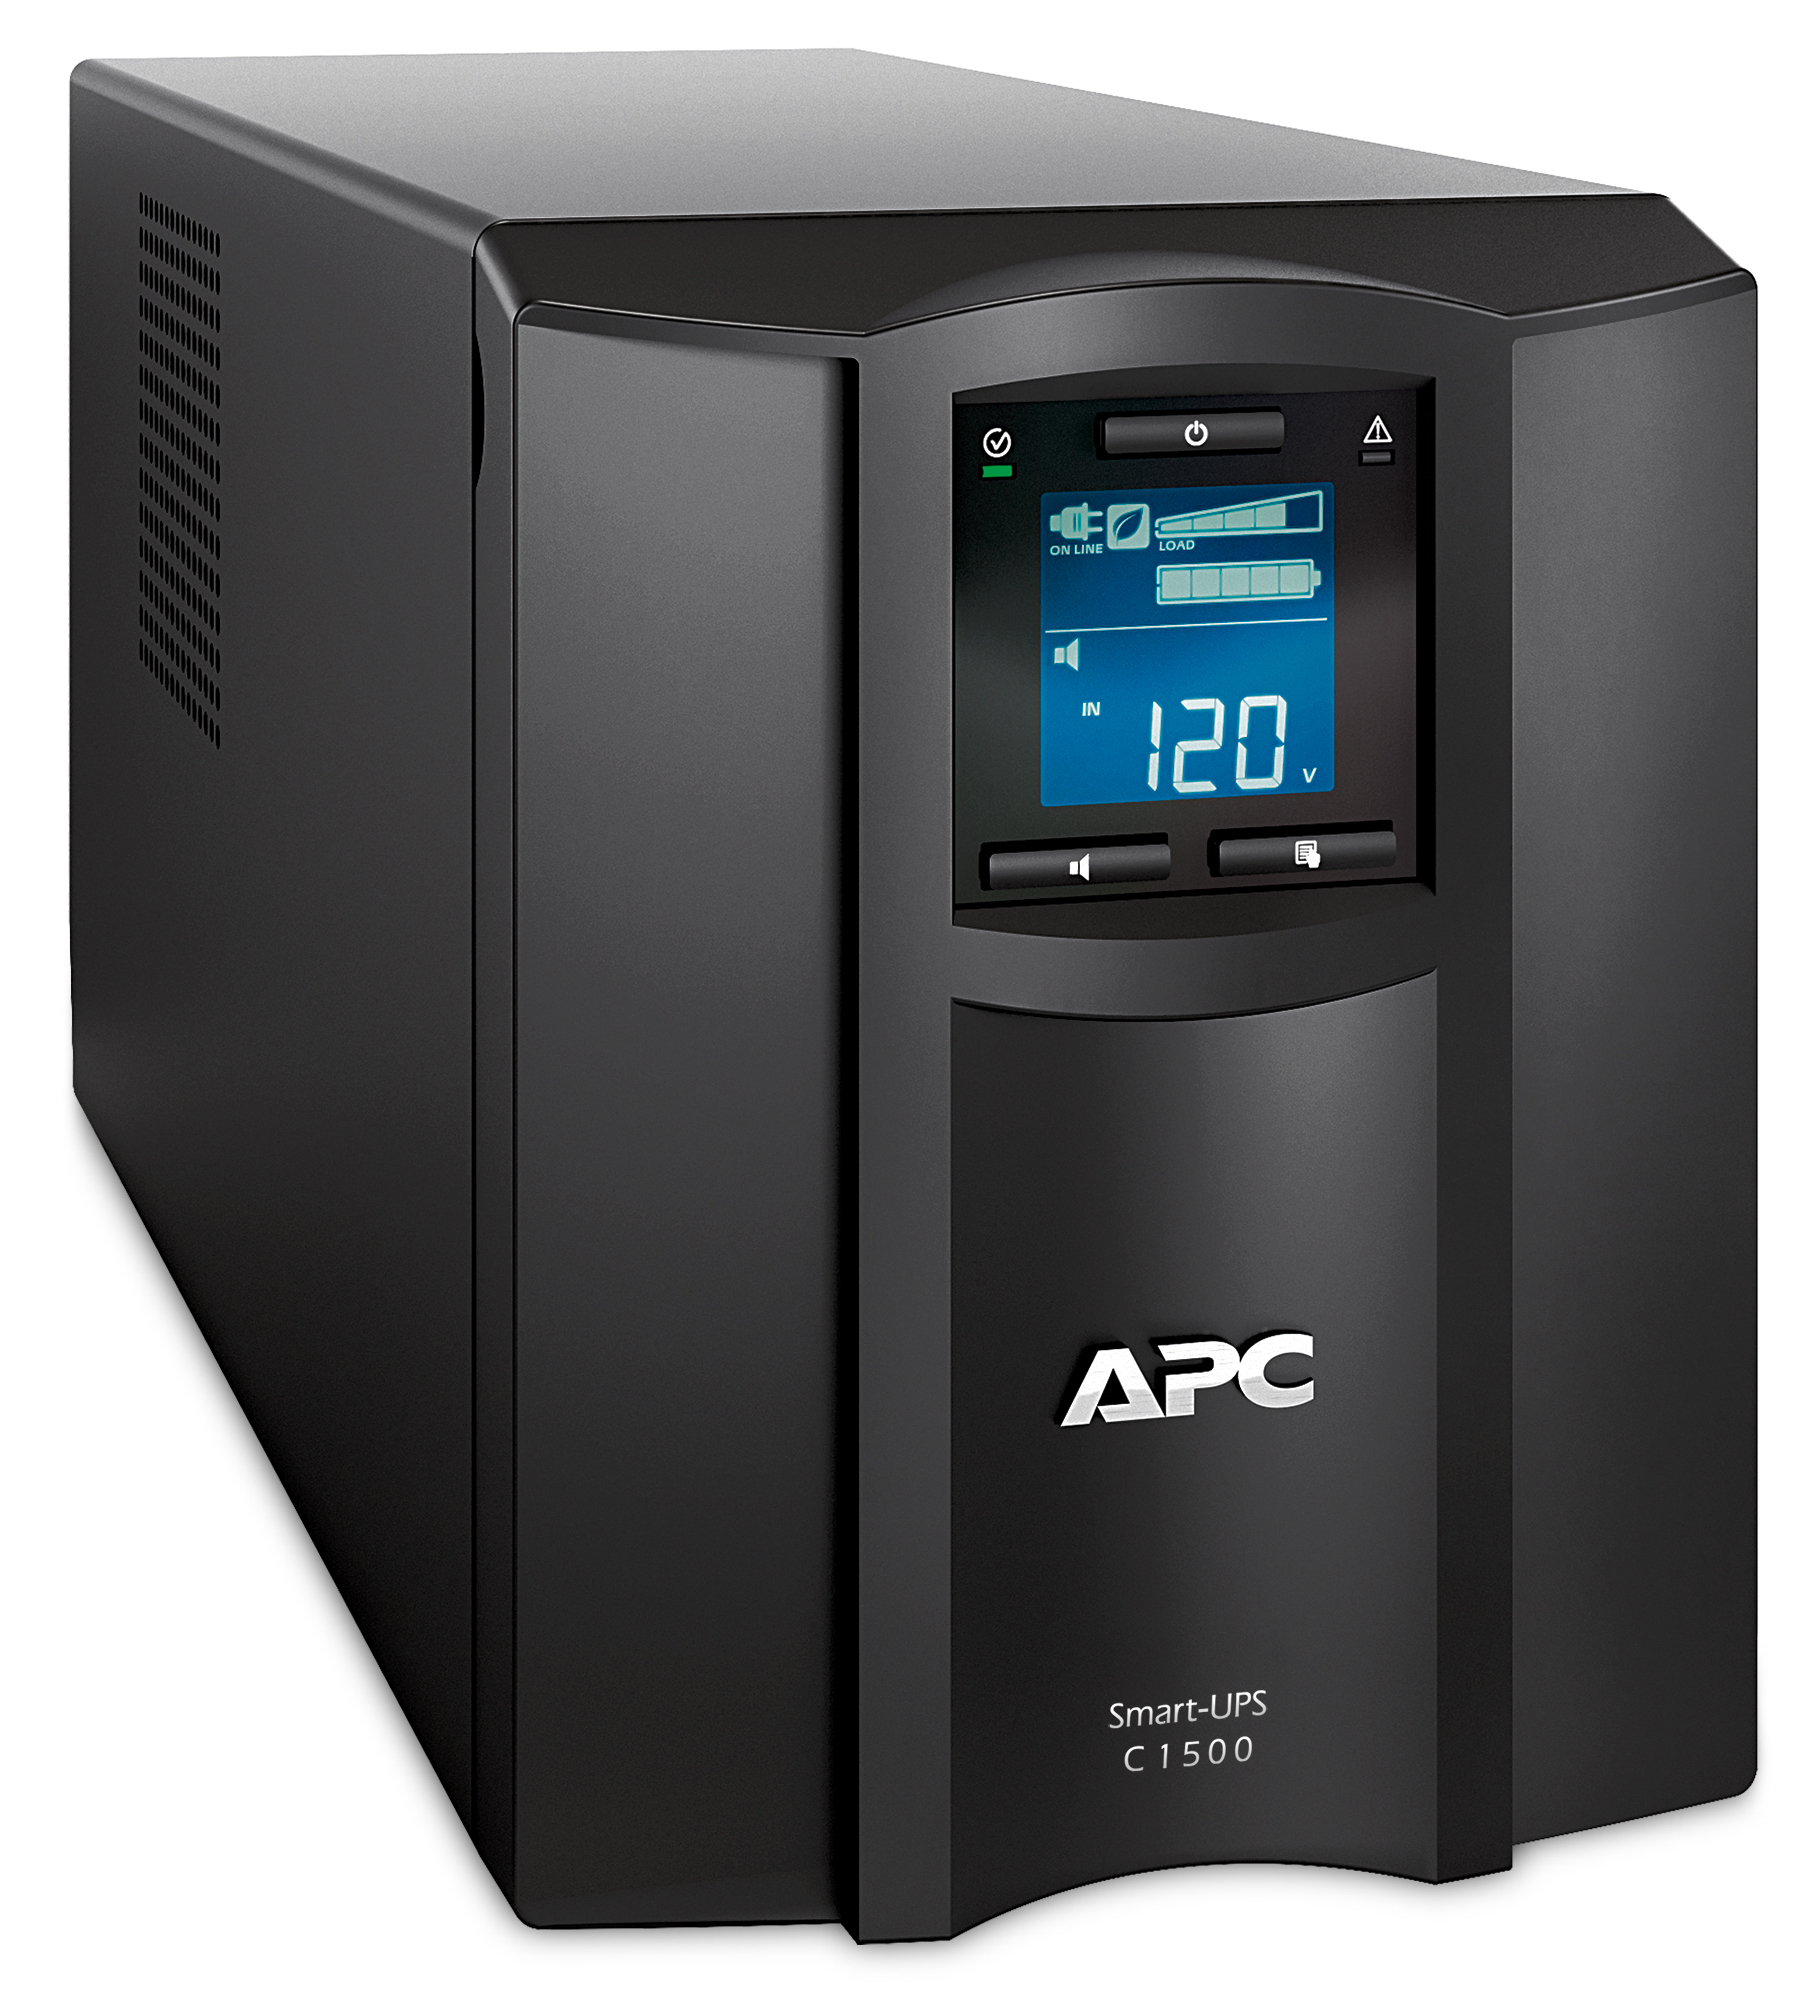 APC SMC1500IC uninterruptible power supply (UPS) Line-Interactive 1500 VA 900 W 8 AC outlet(s)